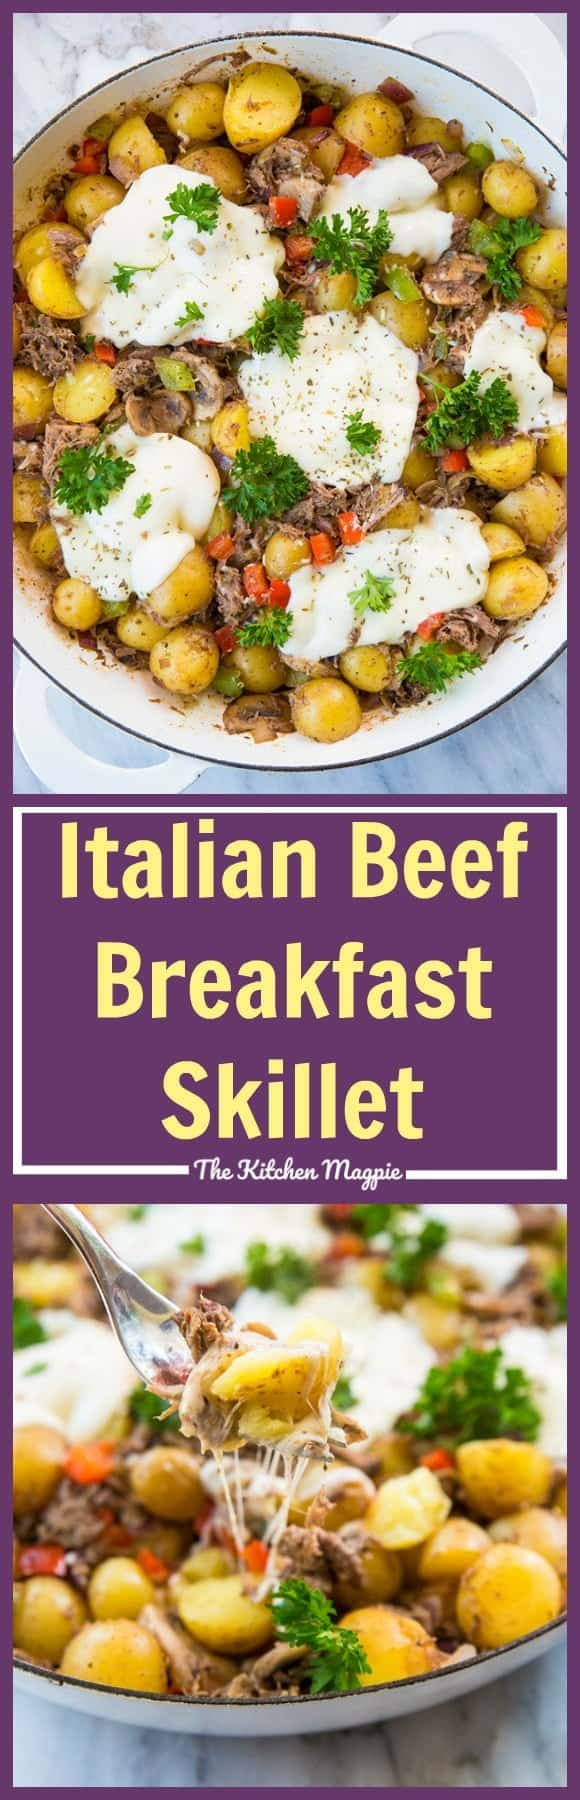 Looking to use up leftover roast beef? This Cheesy Italian Beef Breakfast Skillet is just the ticket! Recipe from @kitchenmagpie. #beef #recipe #breakfast #brunch